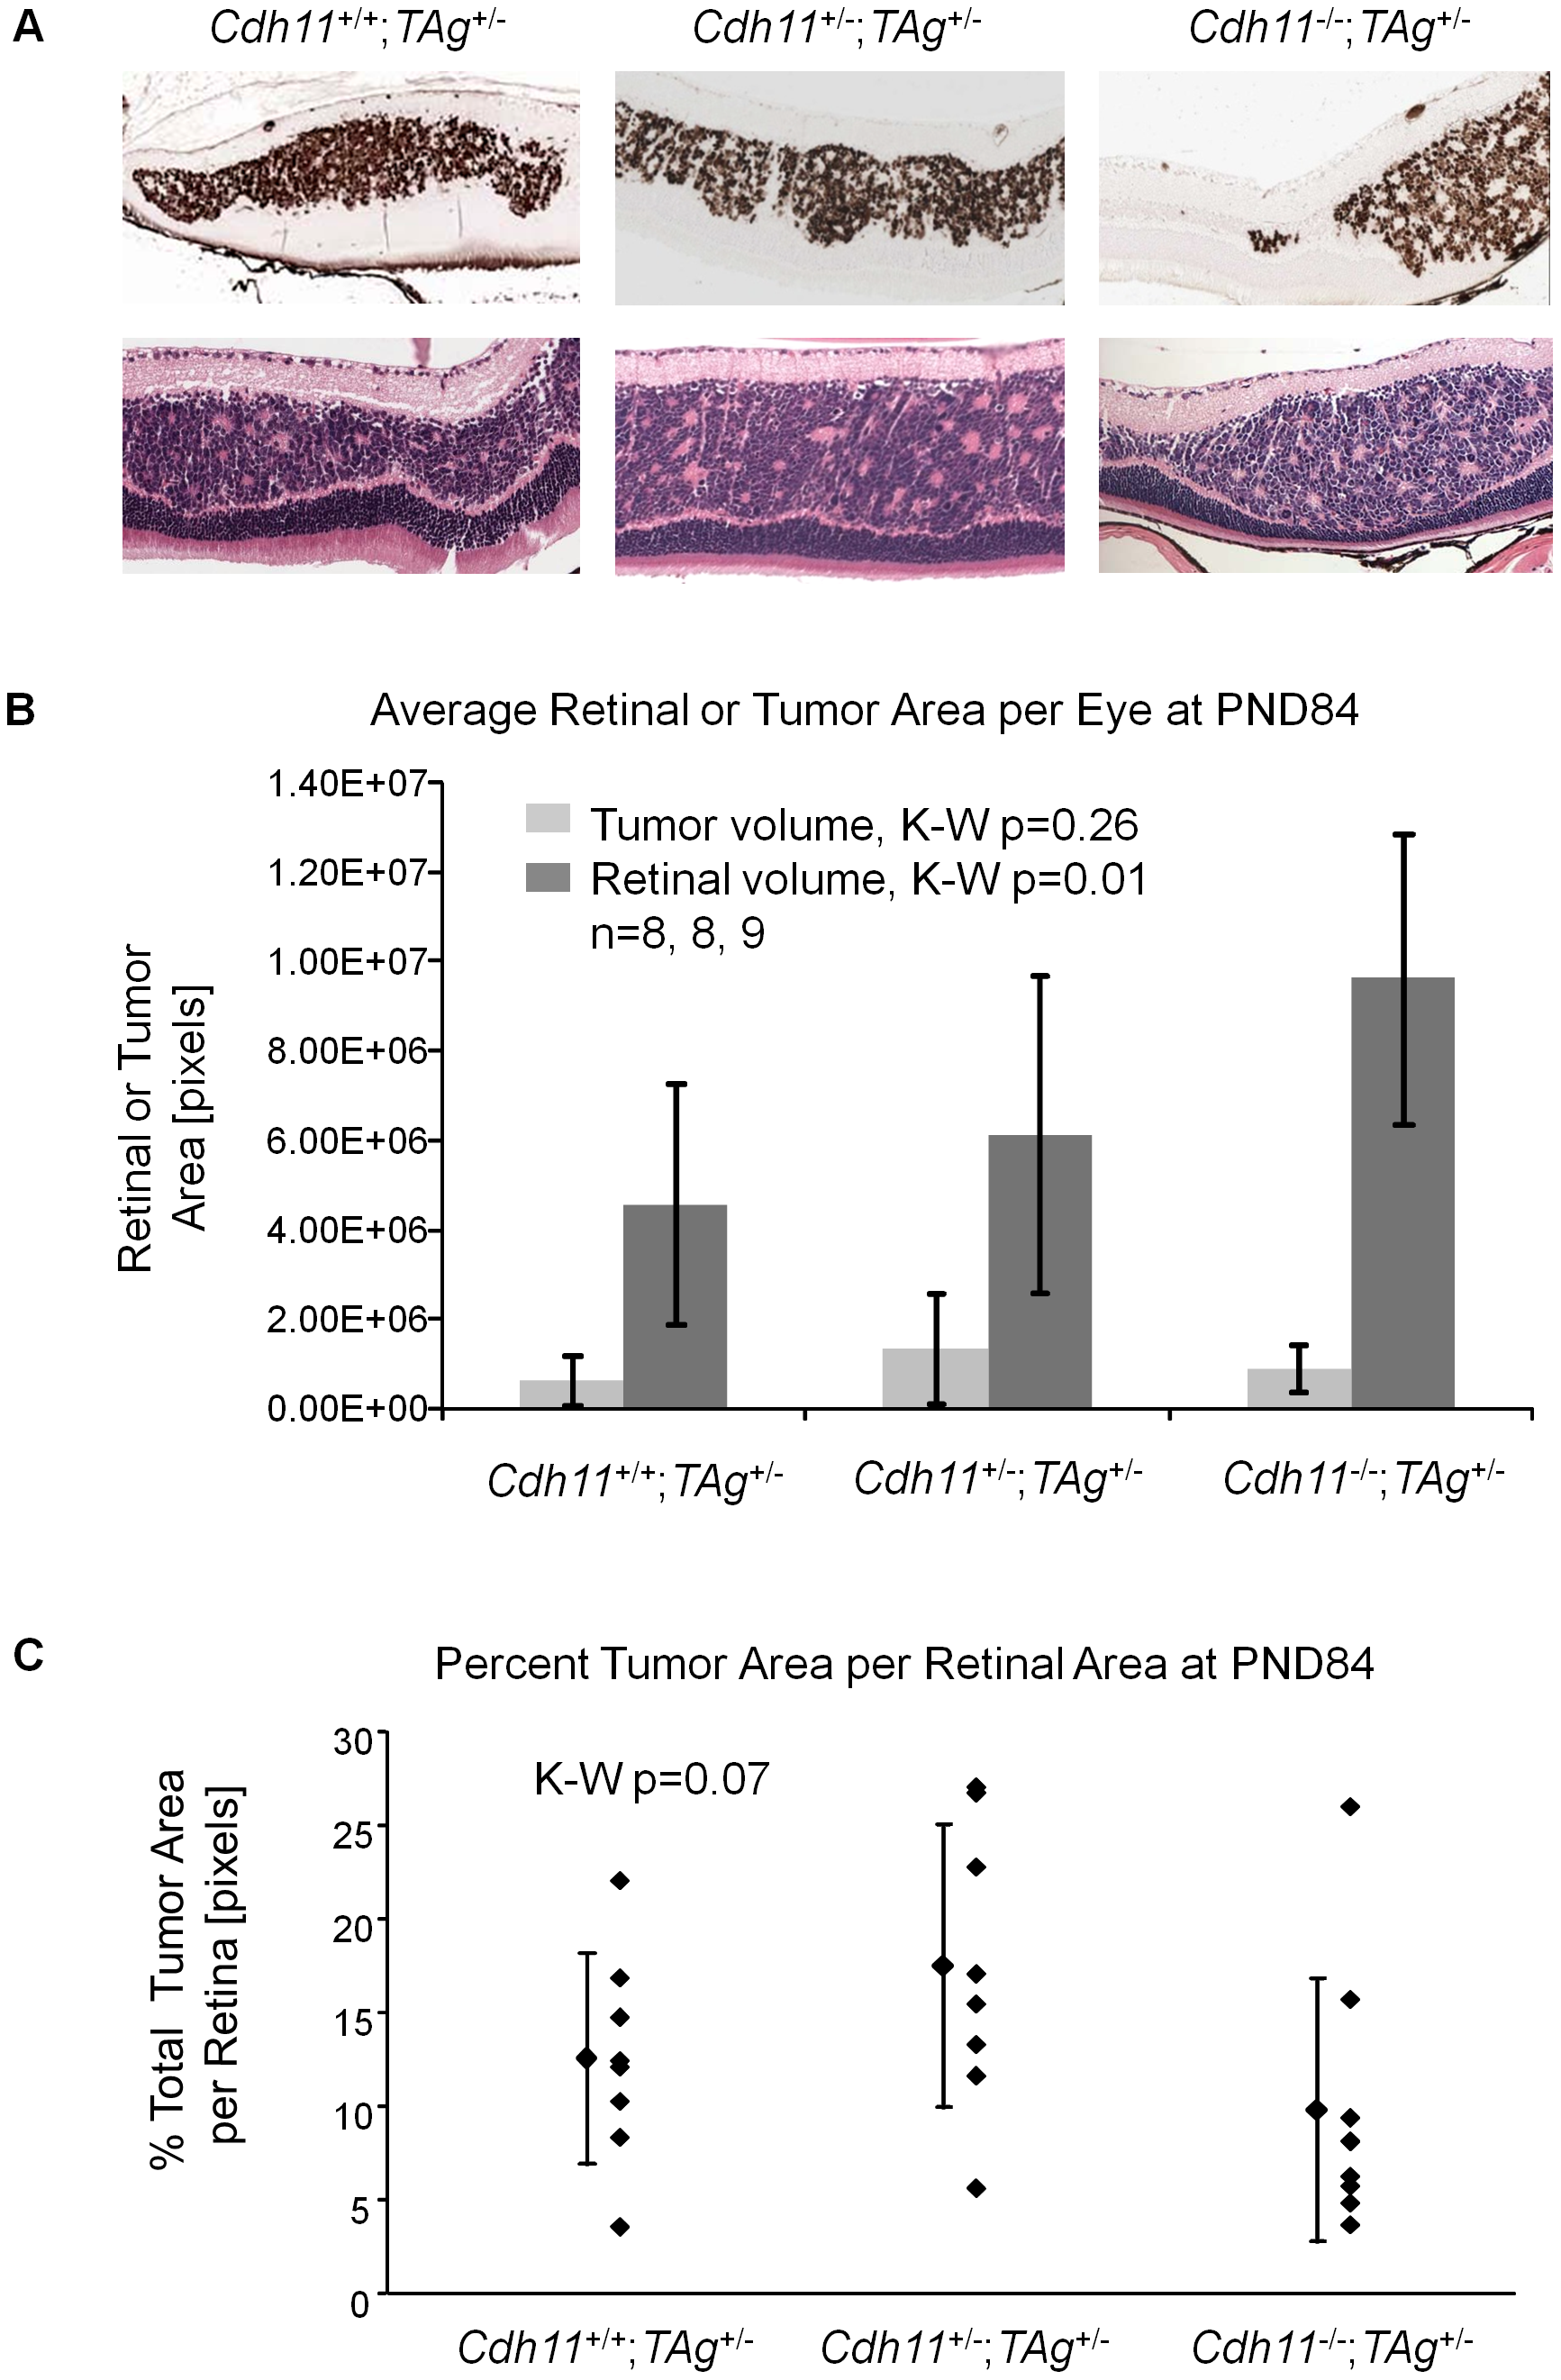 At PND84, total tumor volume was similar in all three genotypes.